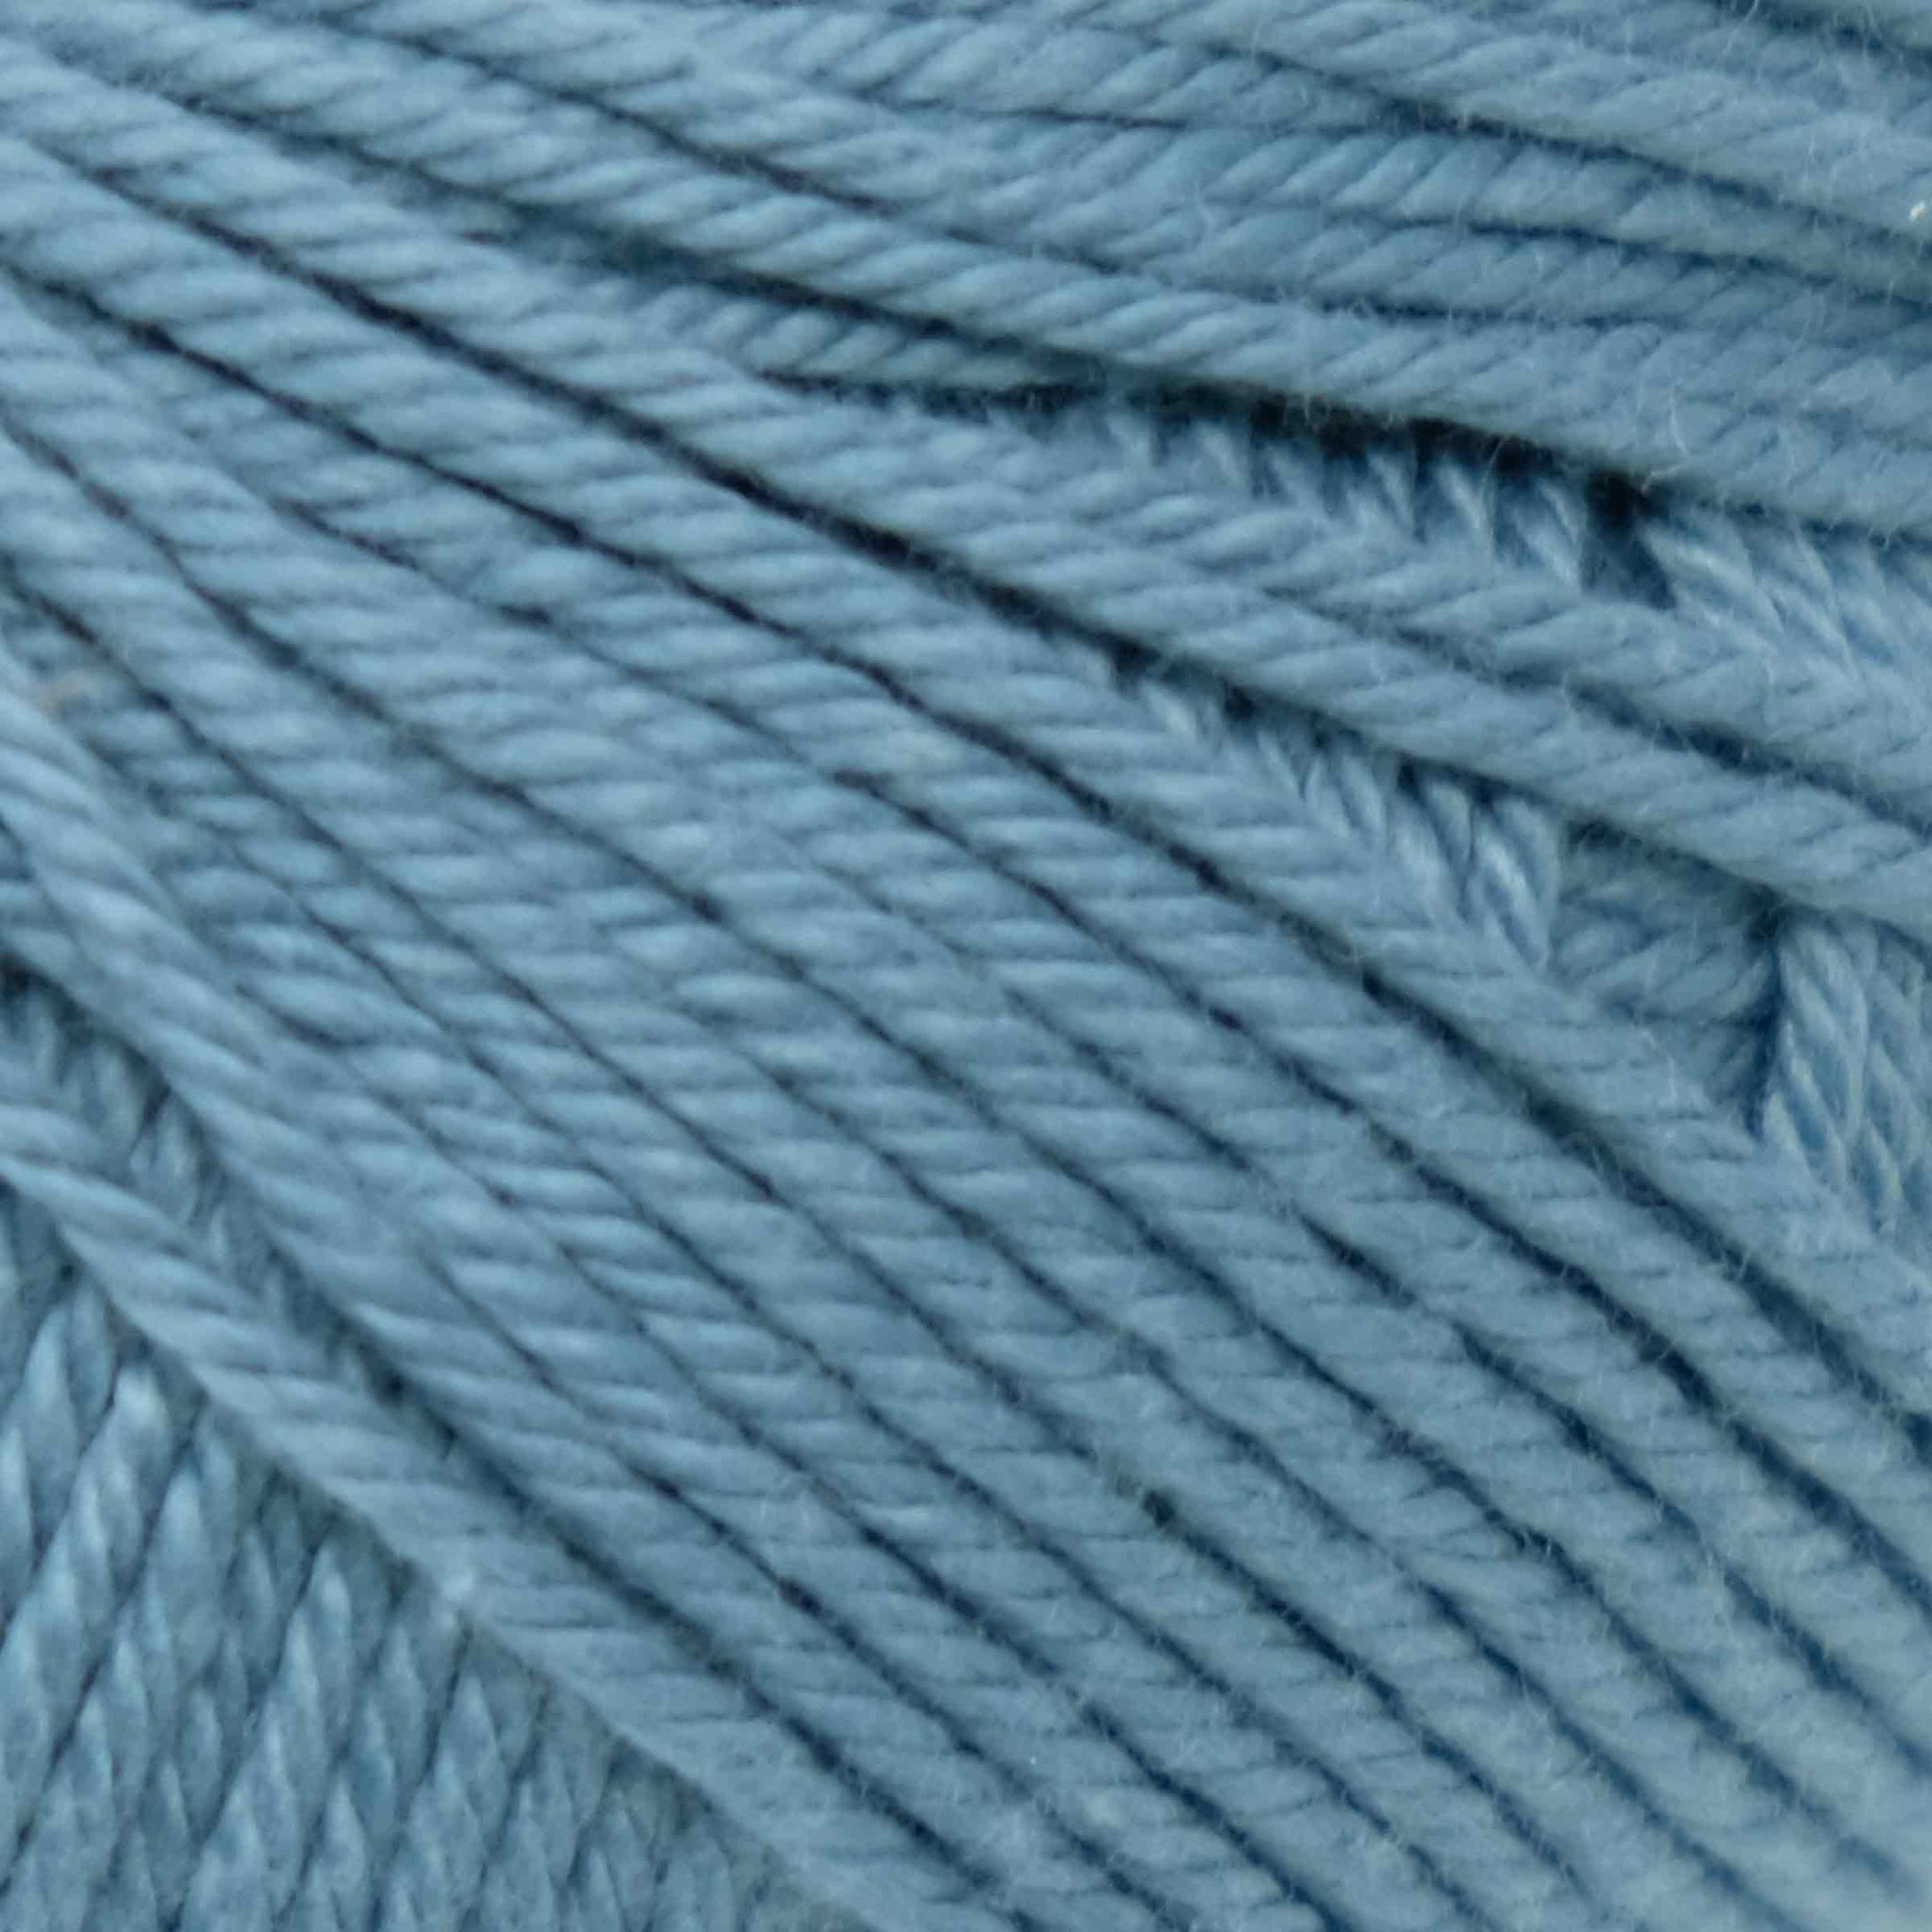 Sirdar Snuggly DK Cotton 750 Smokey Blue